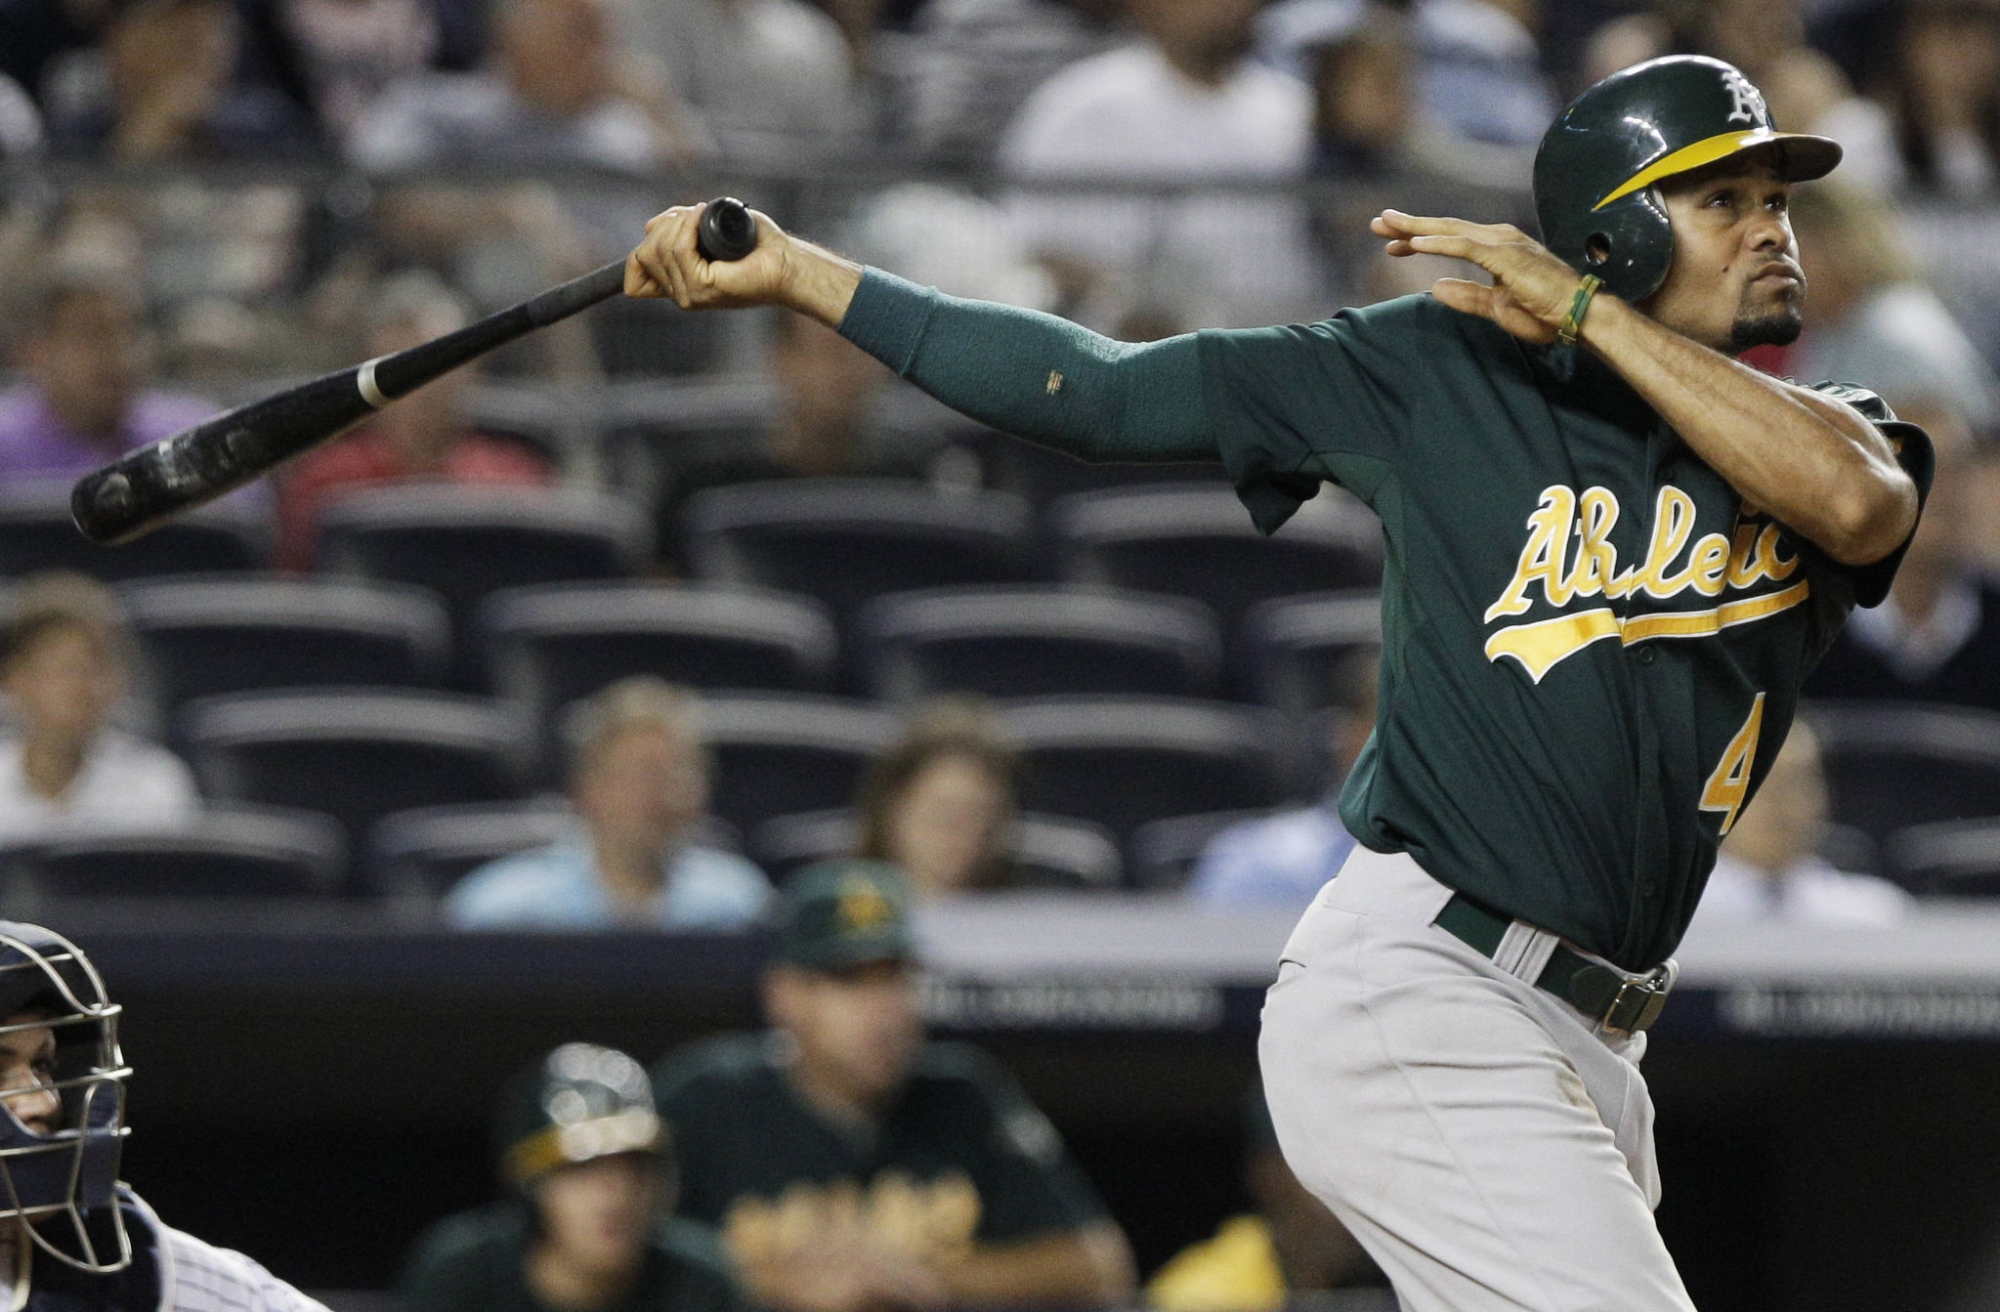 Will The A's Be able to compete in the west?